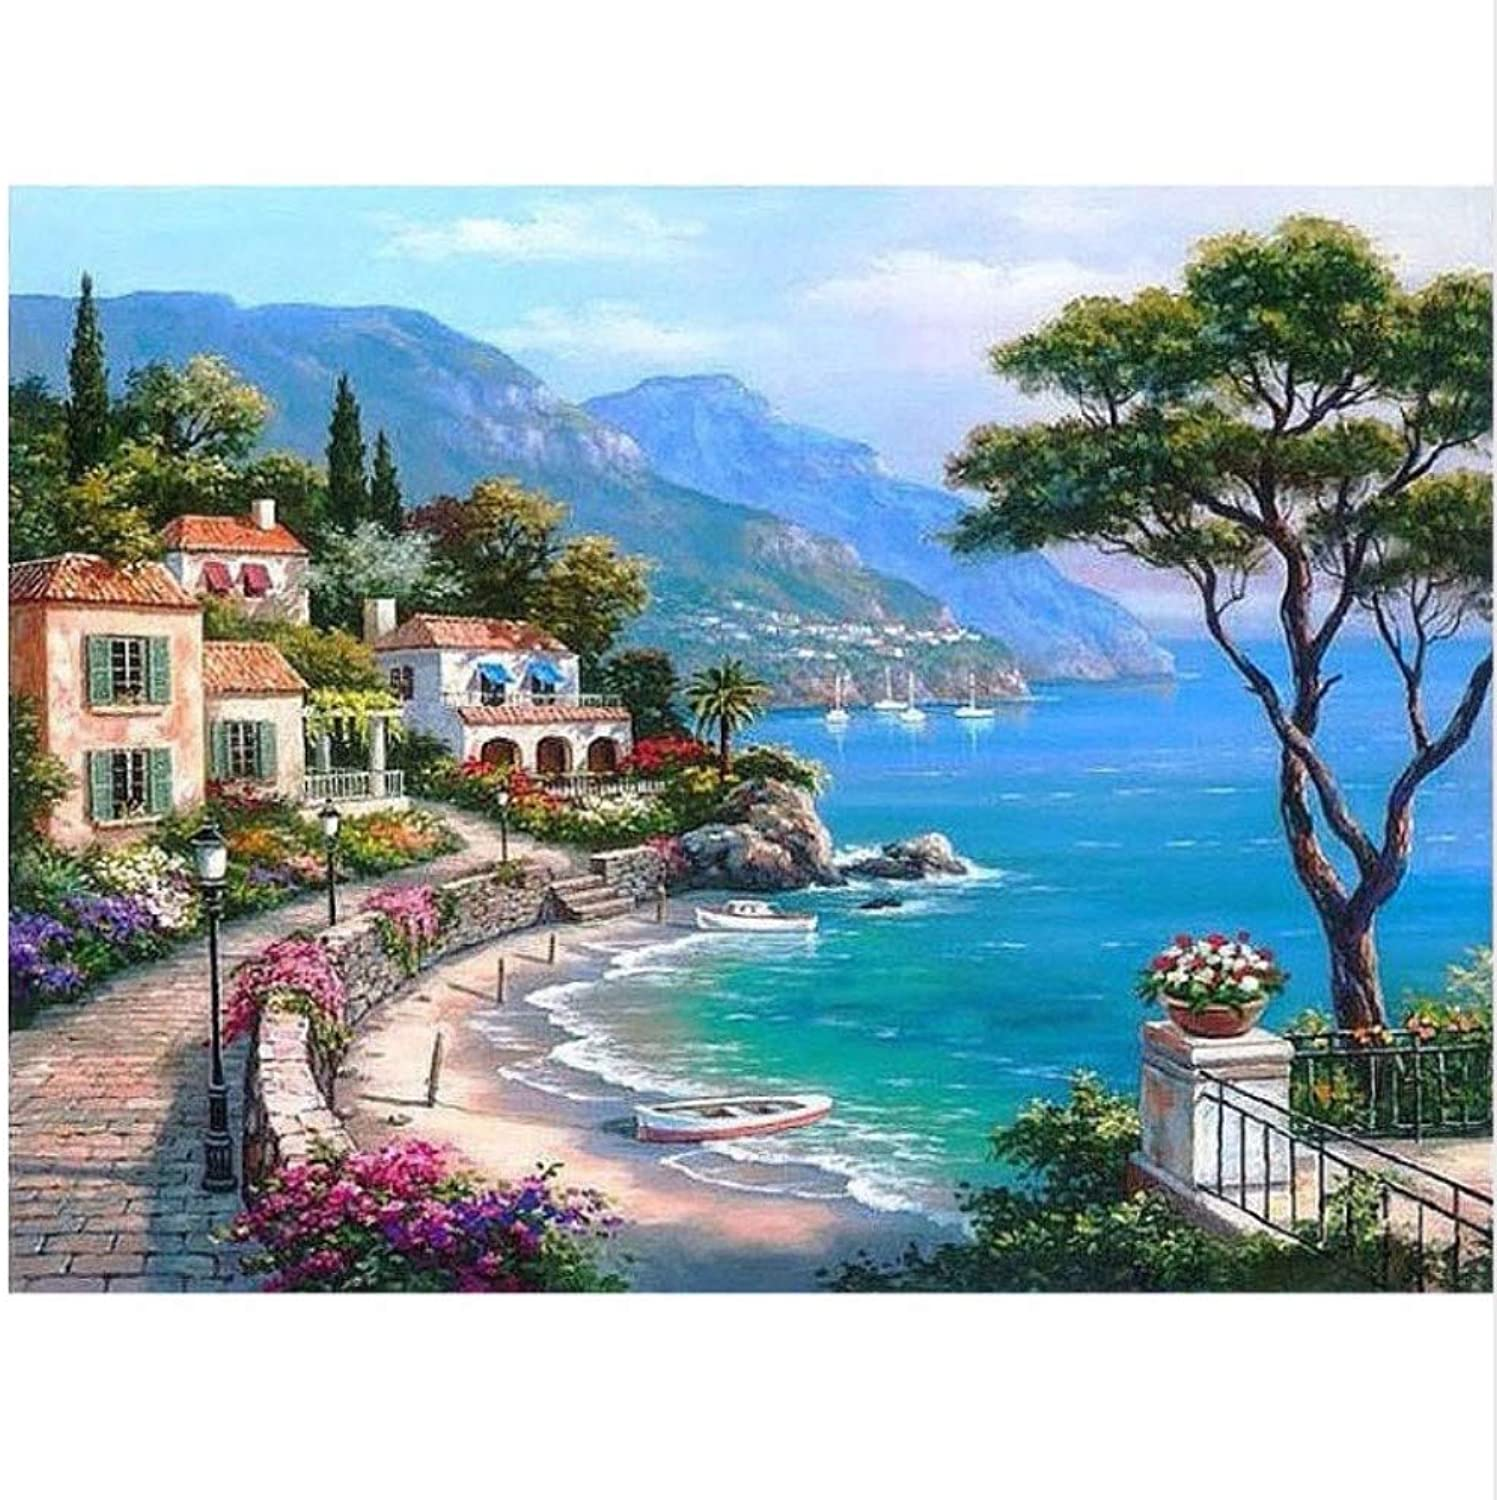 LIWEIXKY The Mediterranean Sea Seaside Diy Digital Painting By Numbers Wall Art Decoration Hand Painted For Home Decor, Framed, 50x60cm